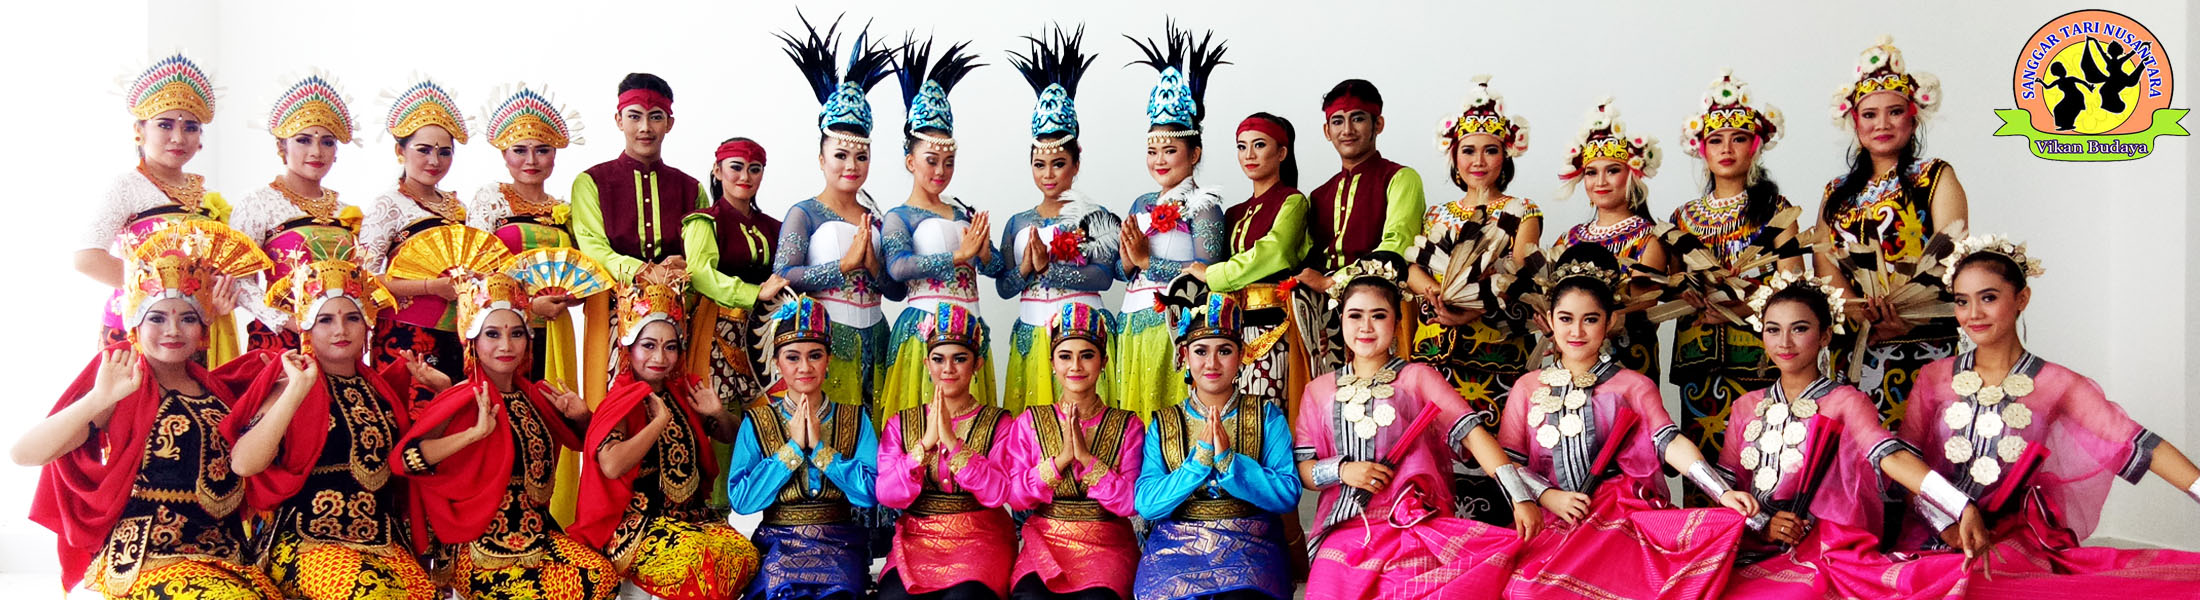 Indonesia Traditional Dancer